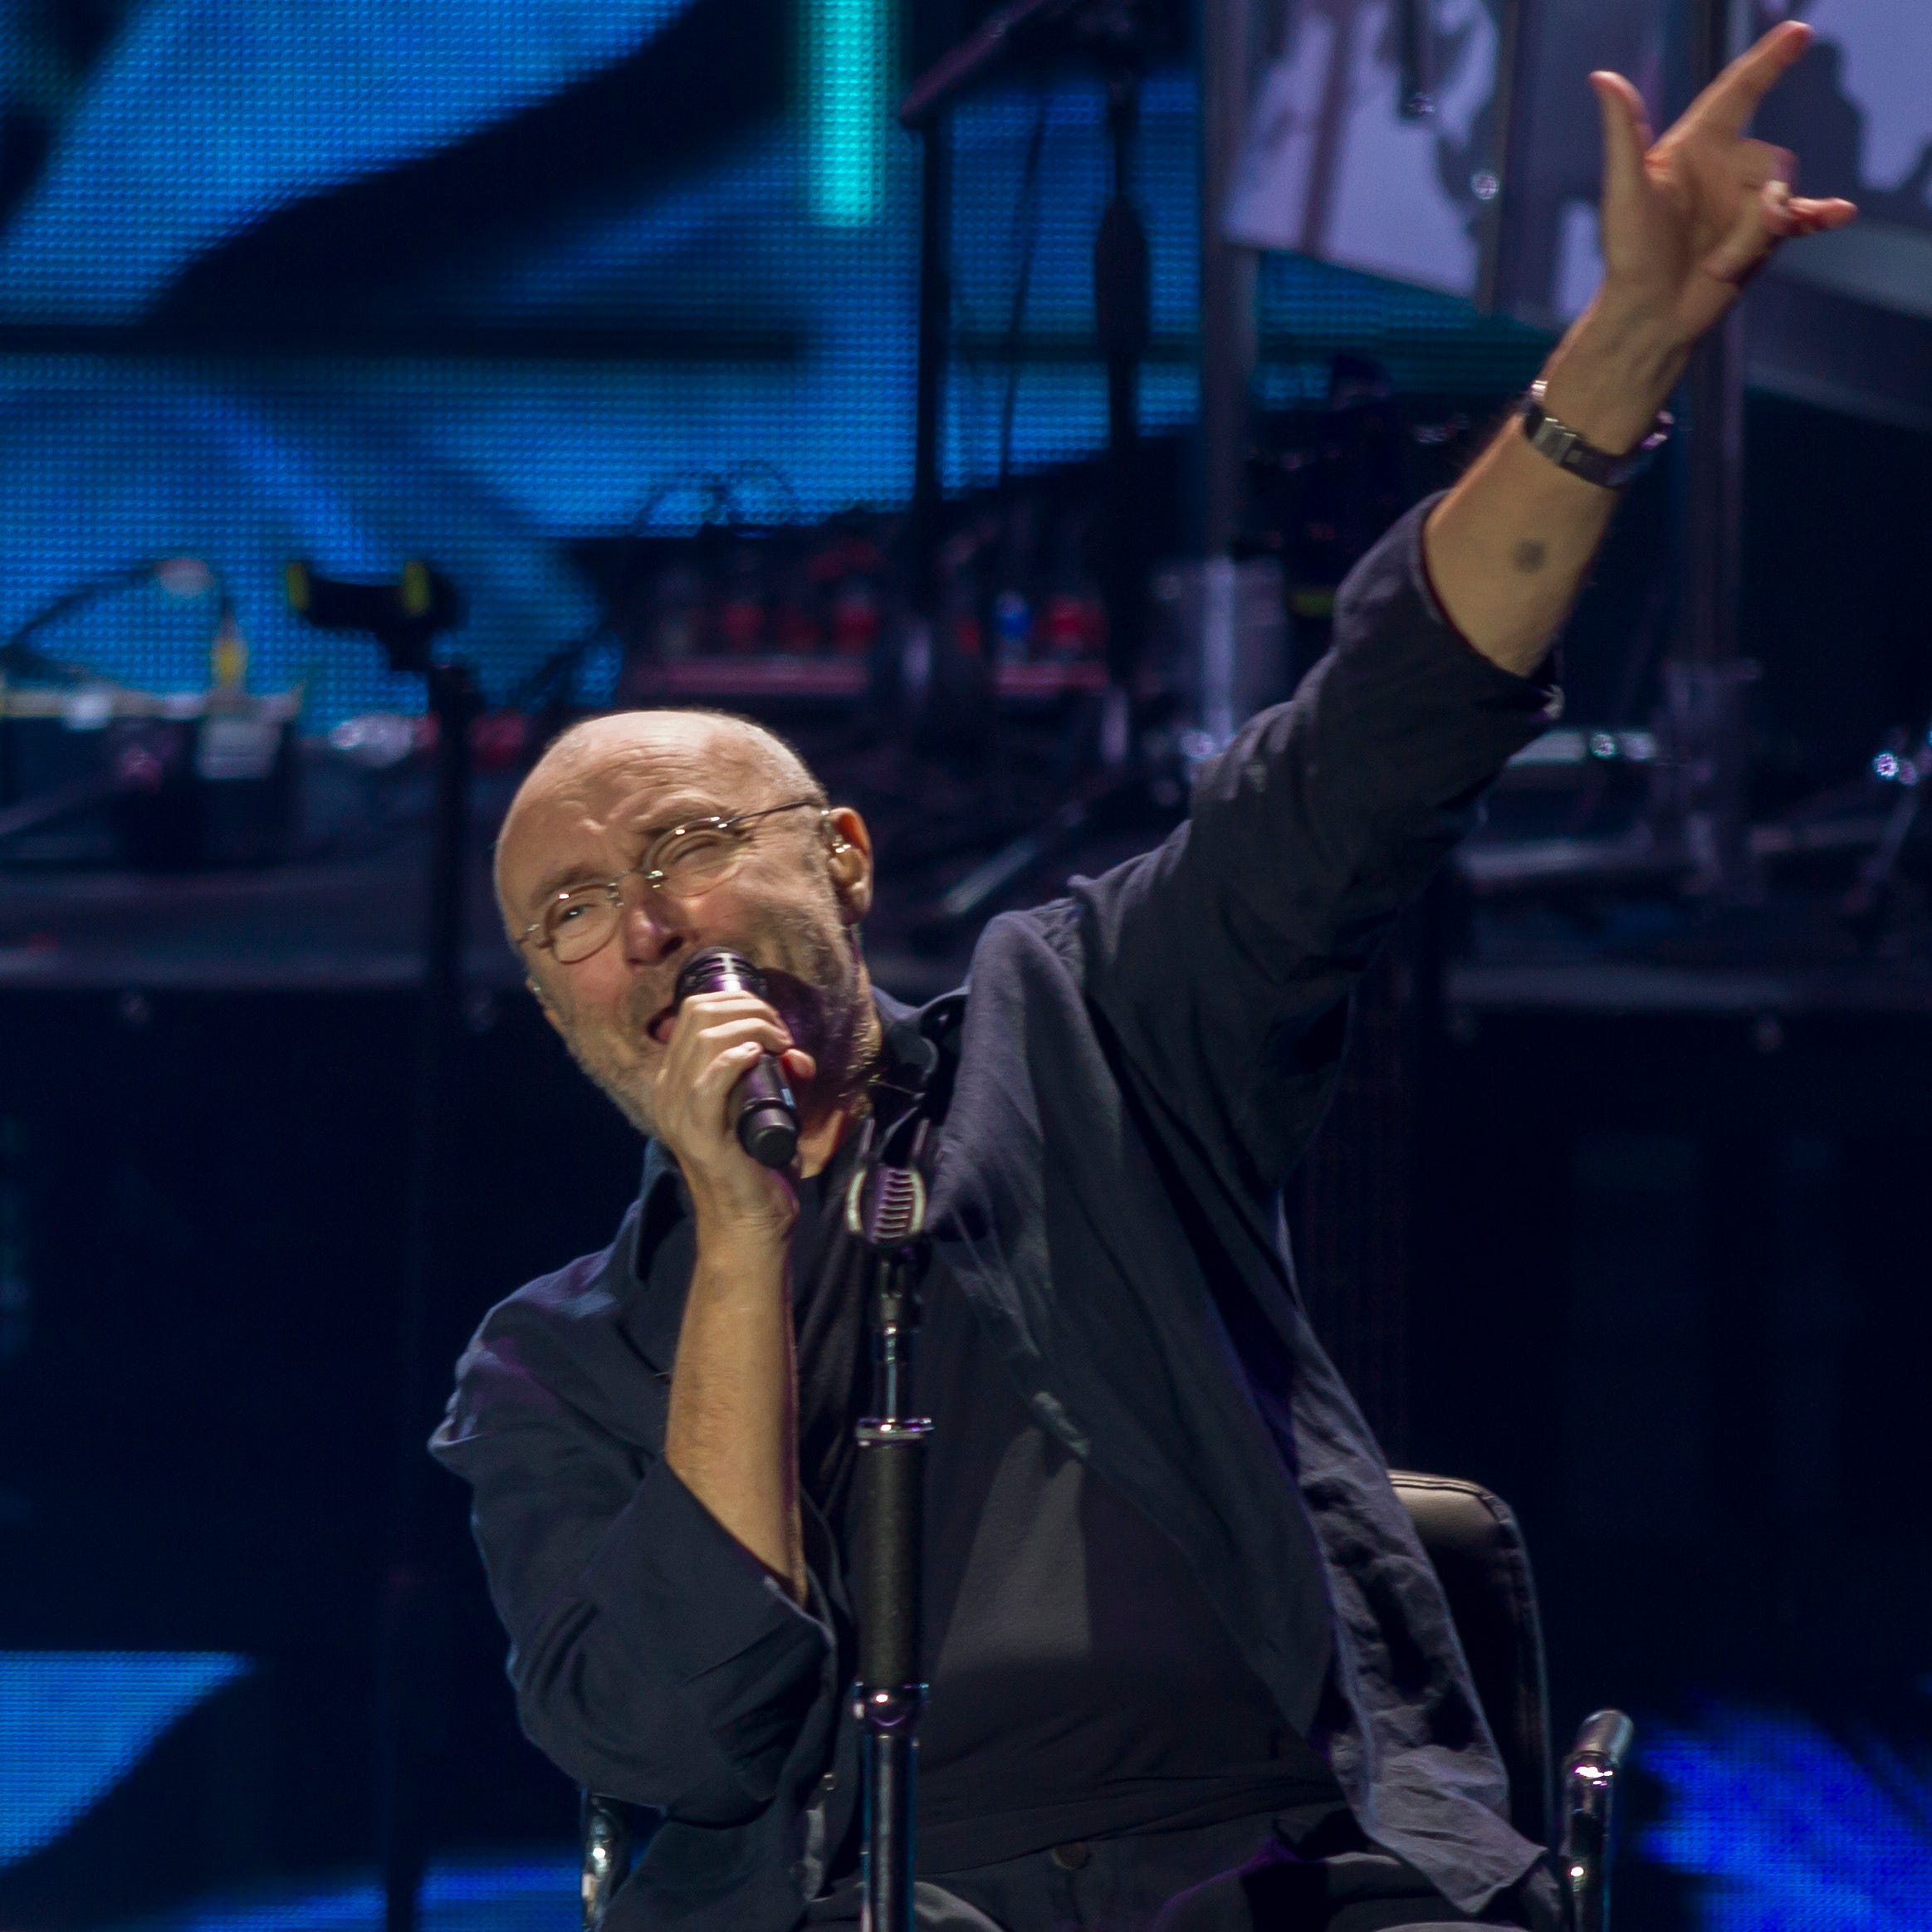 Phil Collins books October show at Little Caesars Arena after long Detroit absence